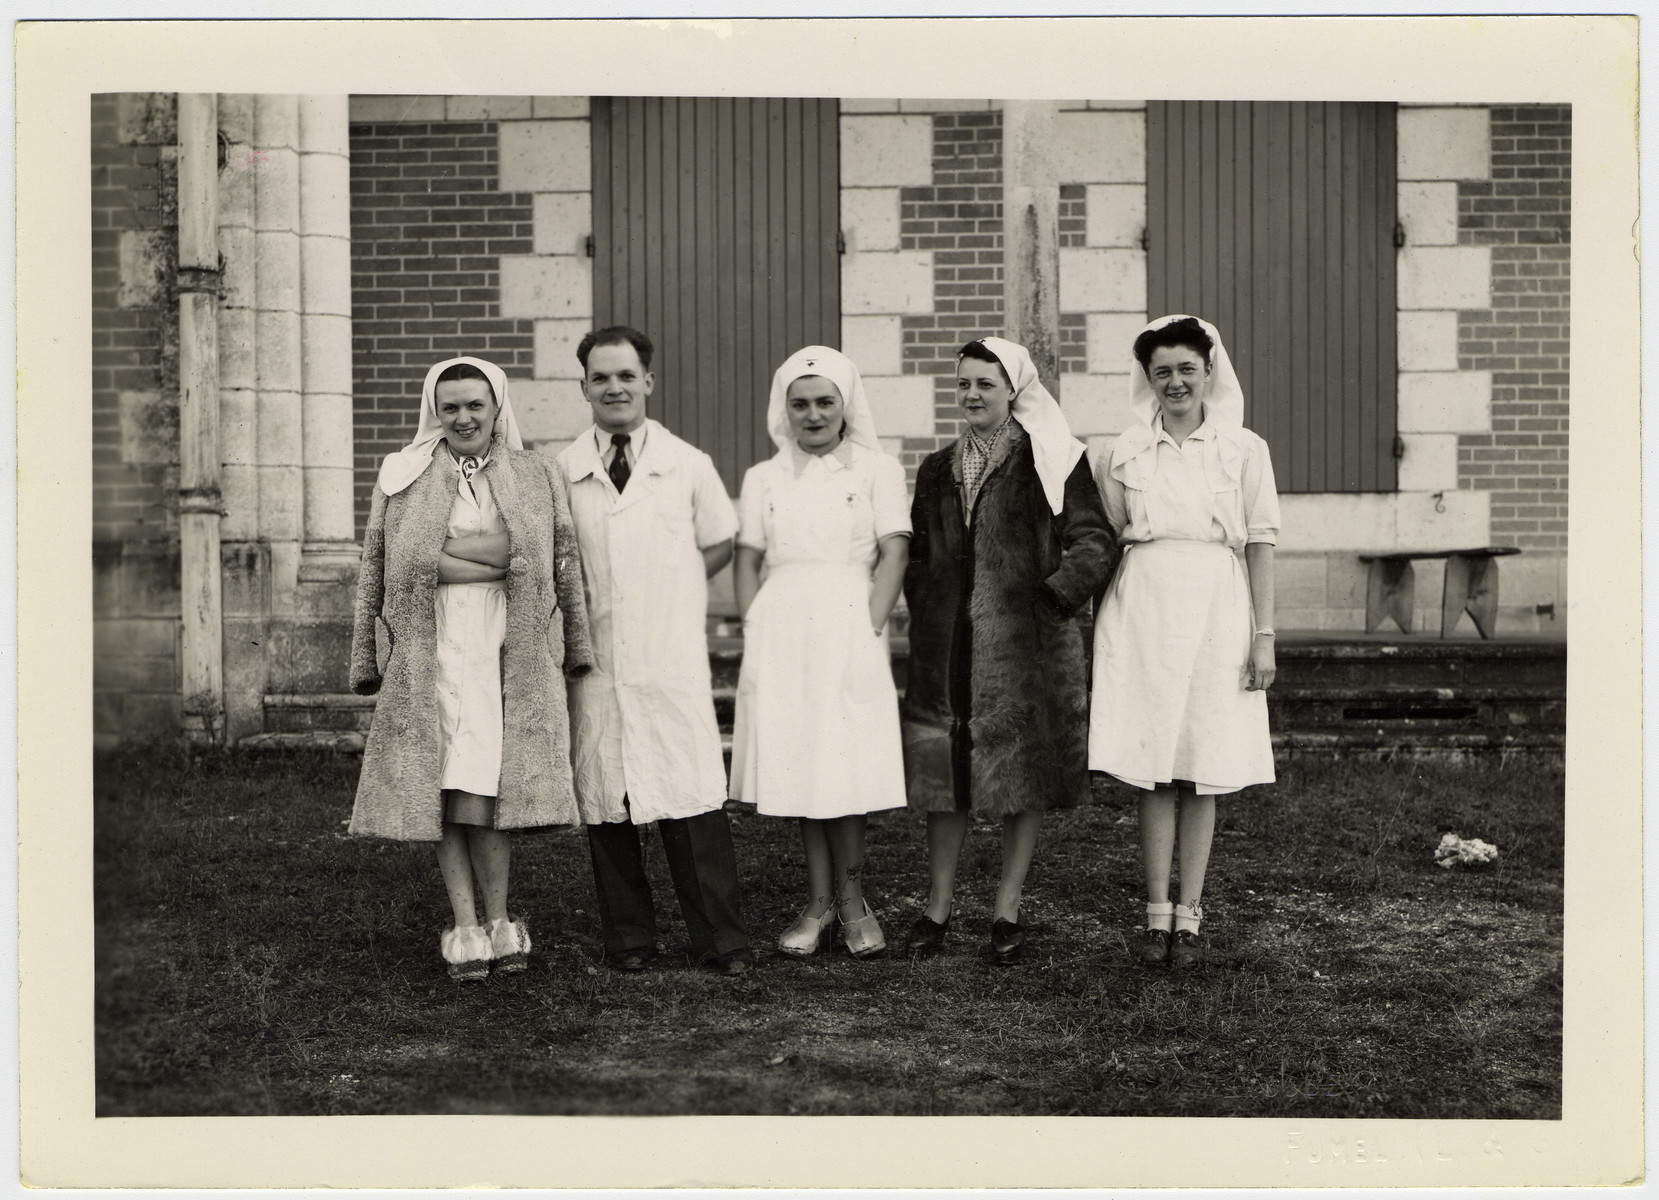 Nurses and doctors of the hospital Chateau du Boscla who ministered to members of the French resistance.  Among those pictured is Mrs. Genevieve Dizien (second from right).    Franklin Mendels, the brother of the donor (named after Franklin Roosevelt) was born in the same hospital while the family was in hiding nearby.  Pictured standing in the center is the director, Dr. Robert Boquet and his wife Genia Boquet.